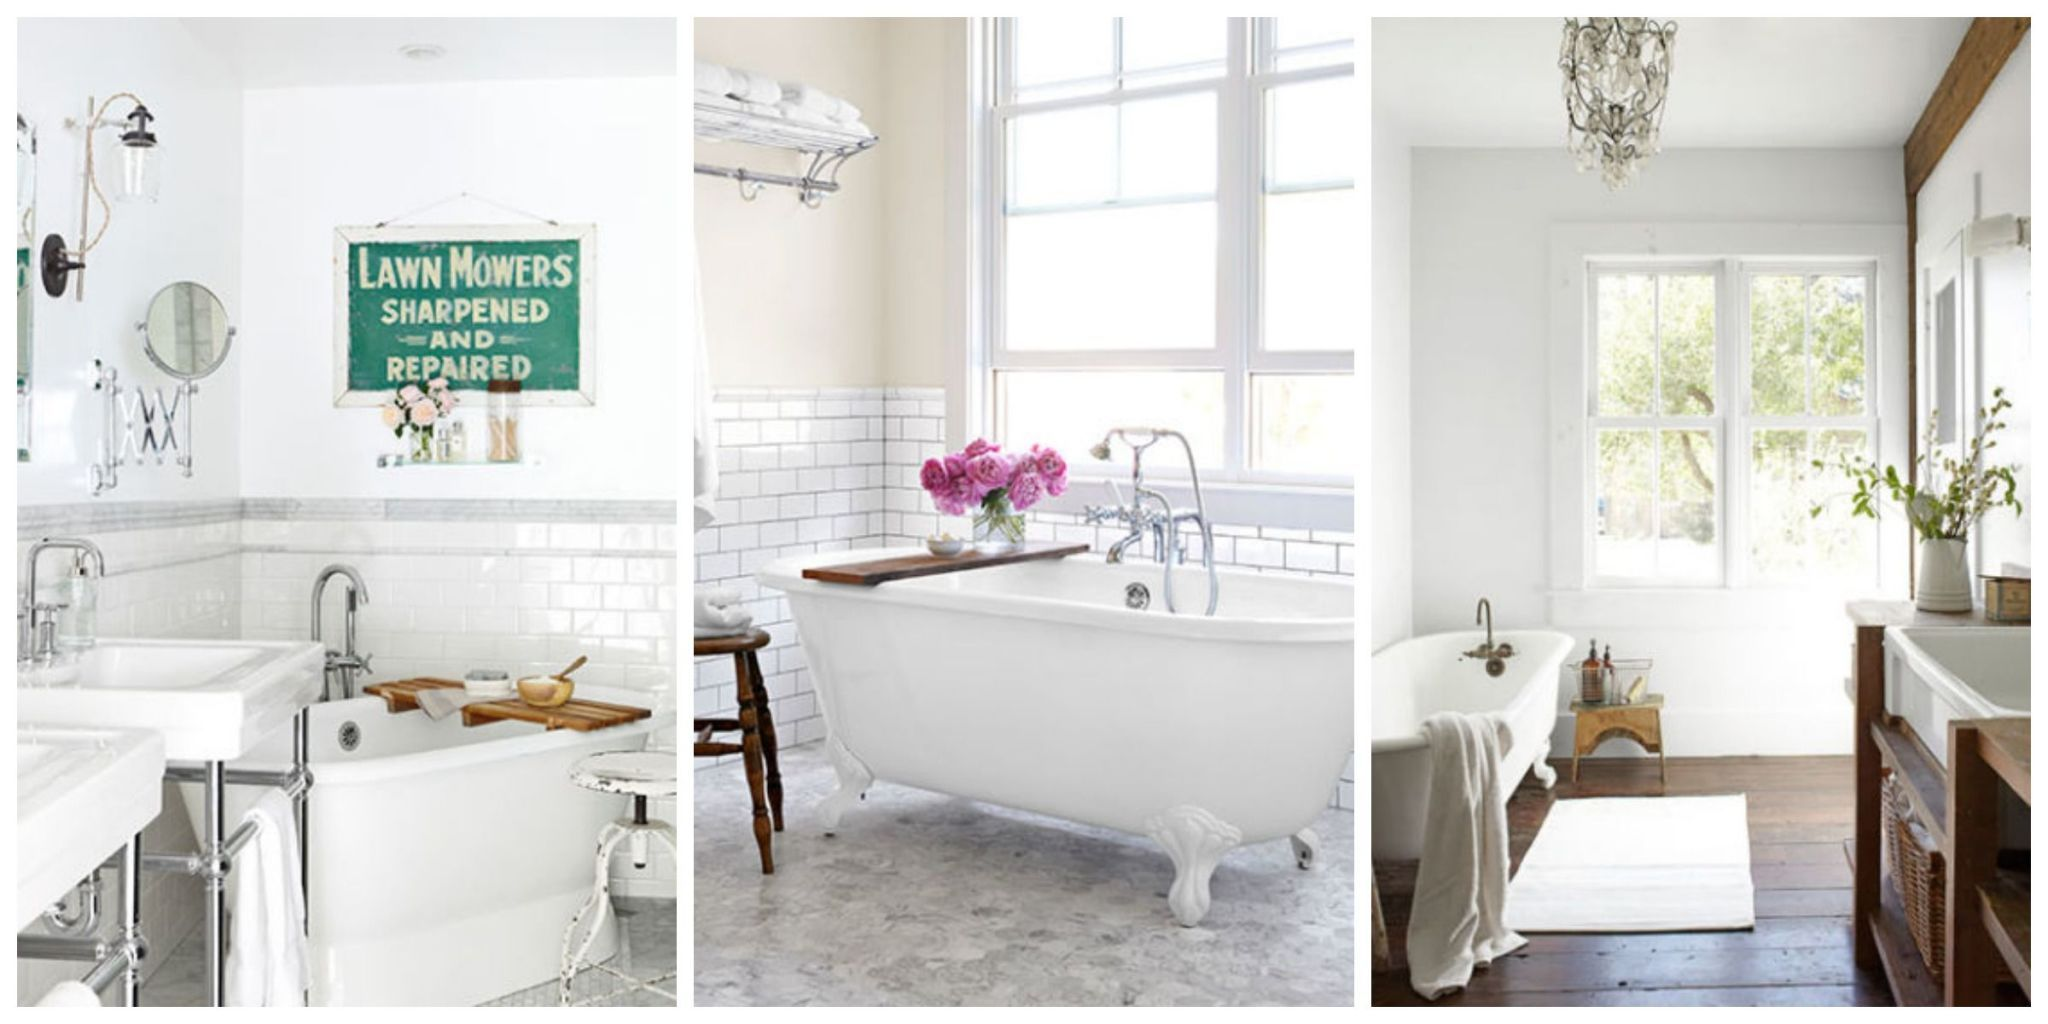 Transform Your Bathroom Or Powder Room Into A Clean, Relaxing, And Bright  Space With These Decorating Tips. Plus, Get More Bathroom Ideas!